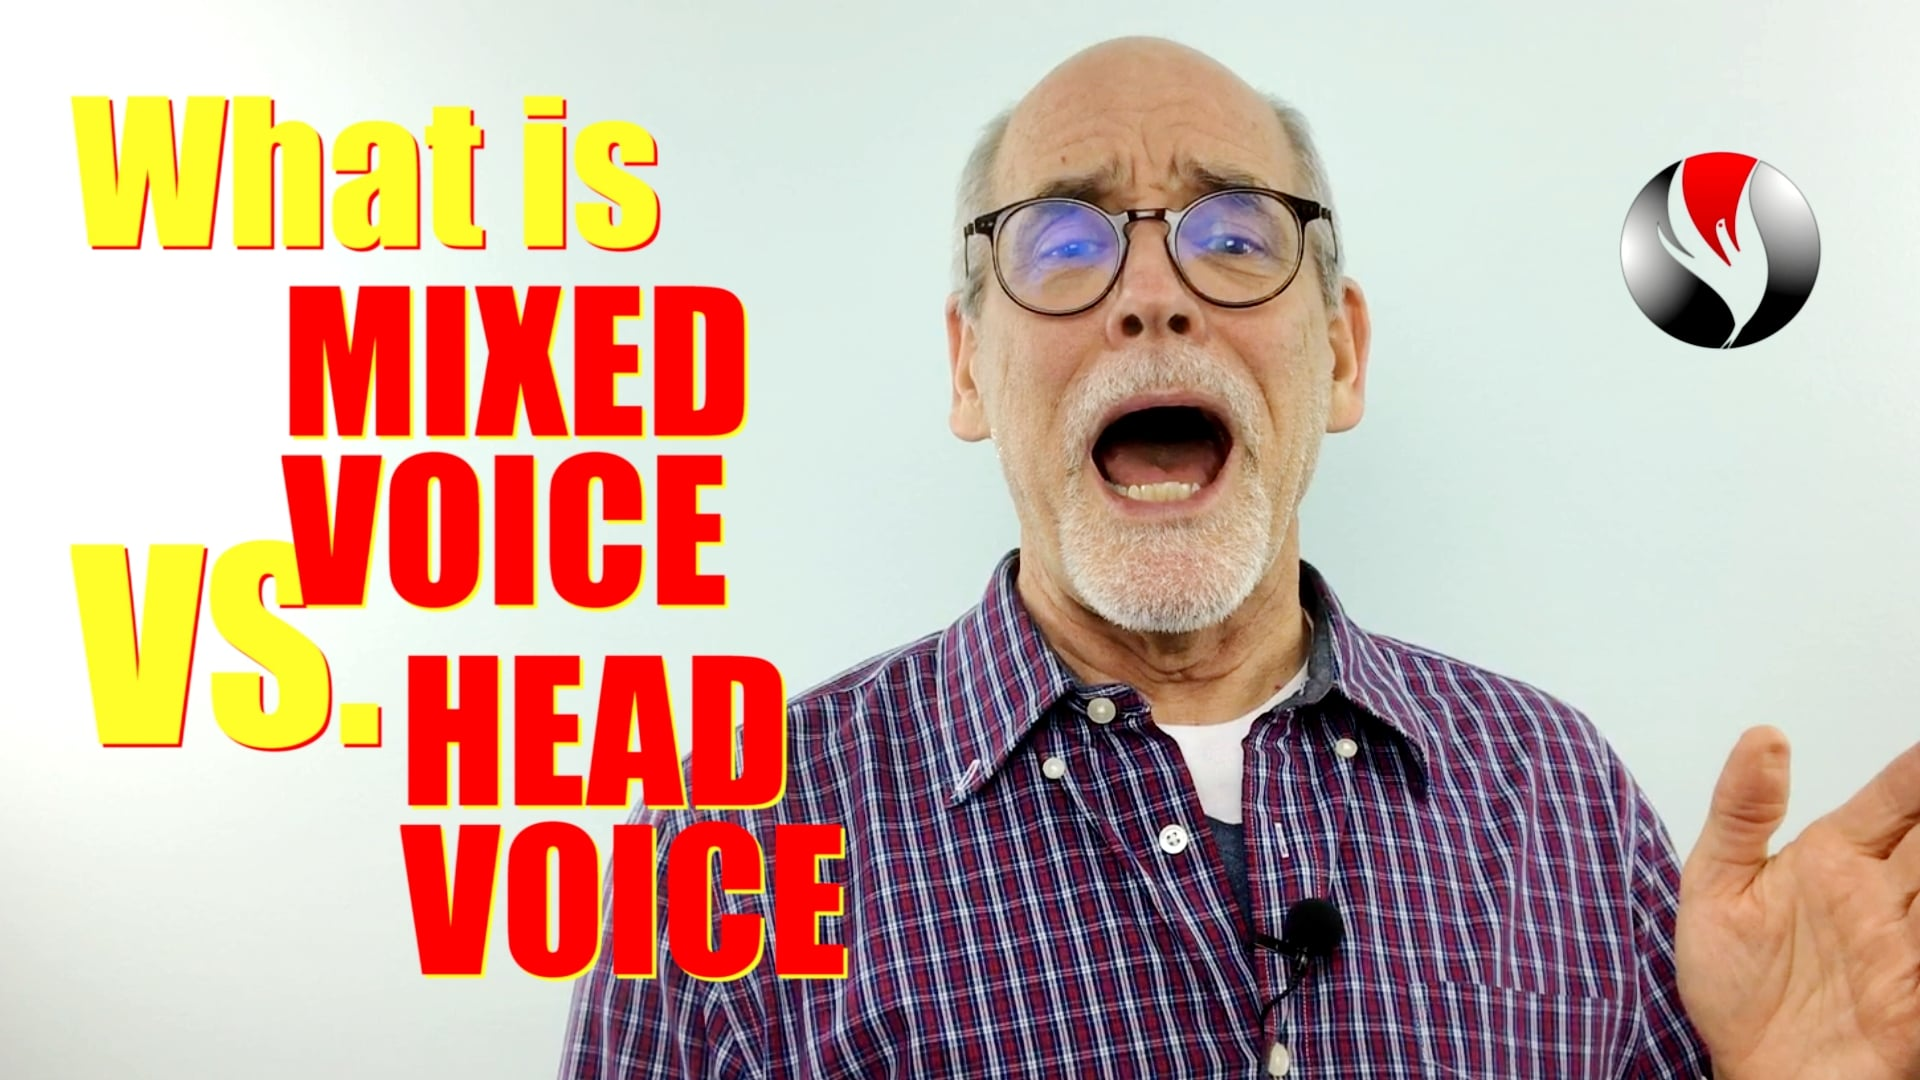 What Is Mixed Voice vs Head Voice?